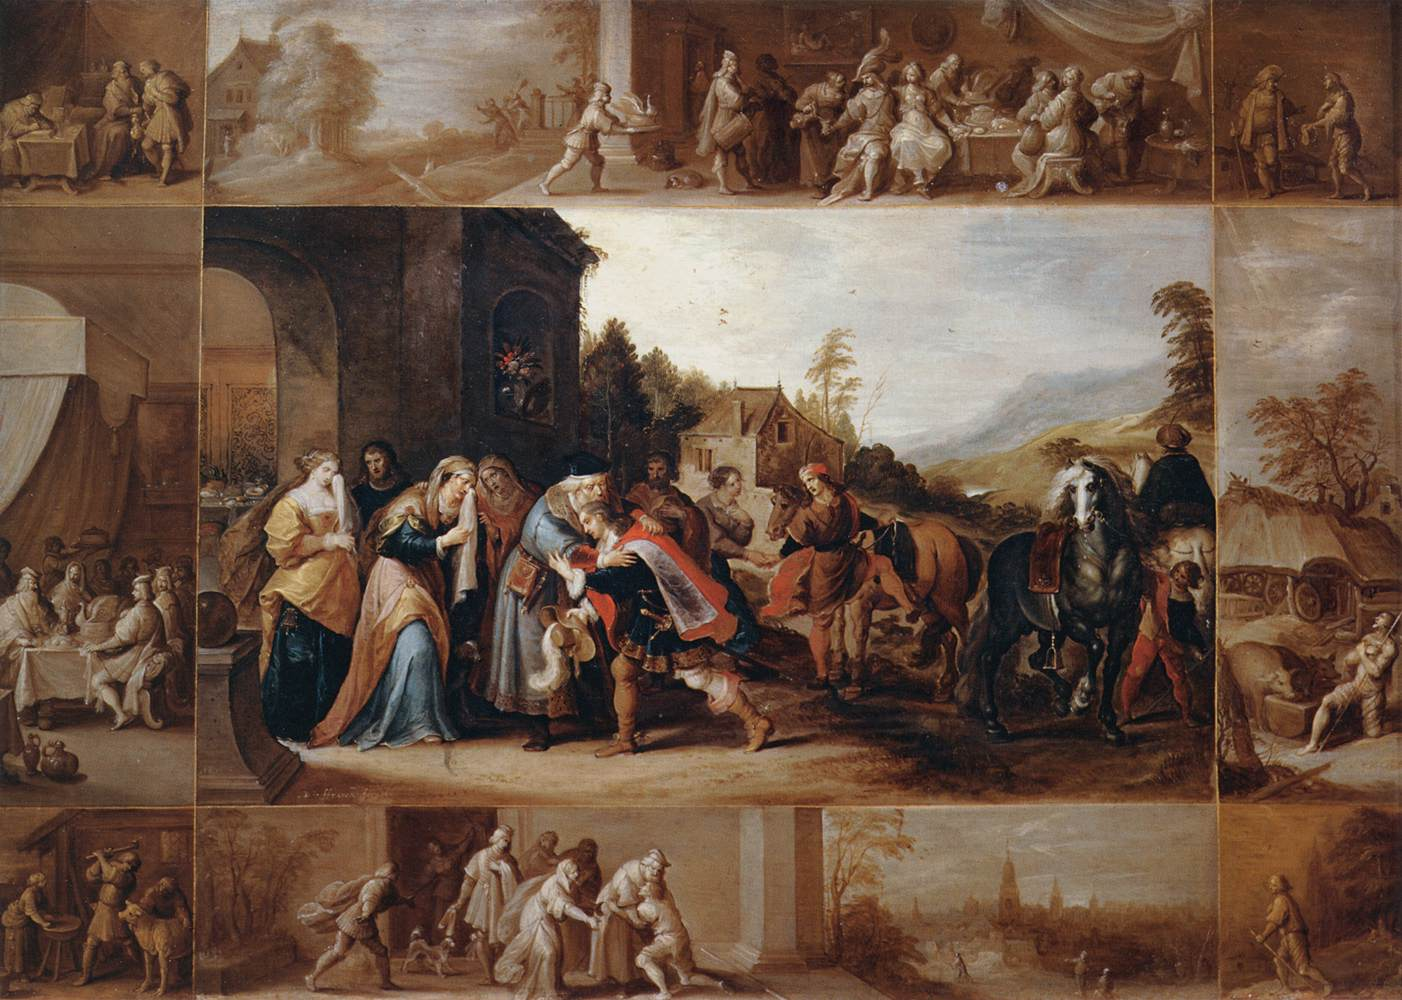 essay on the parable of the prodigal son